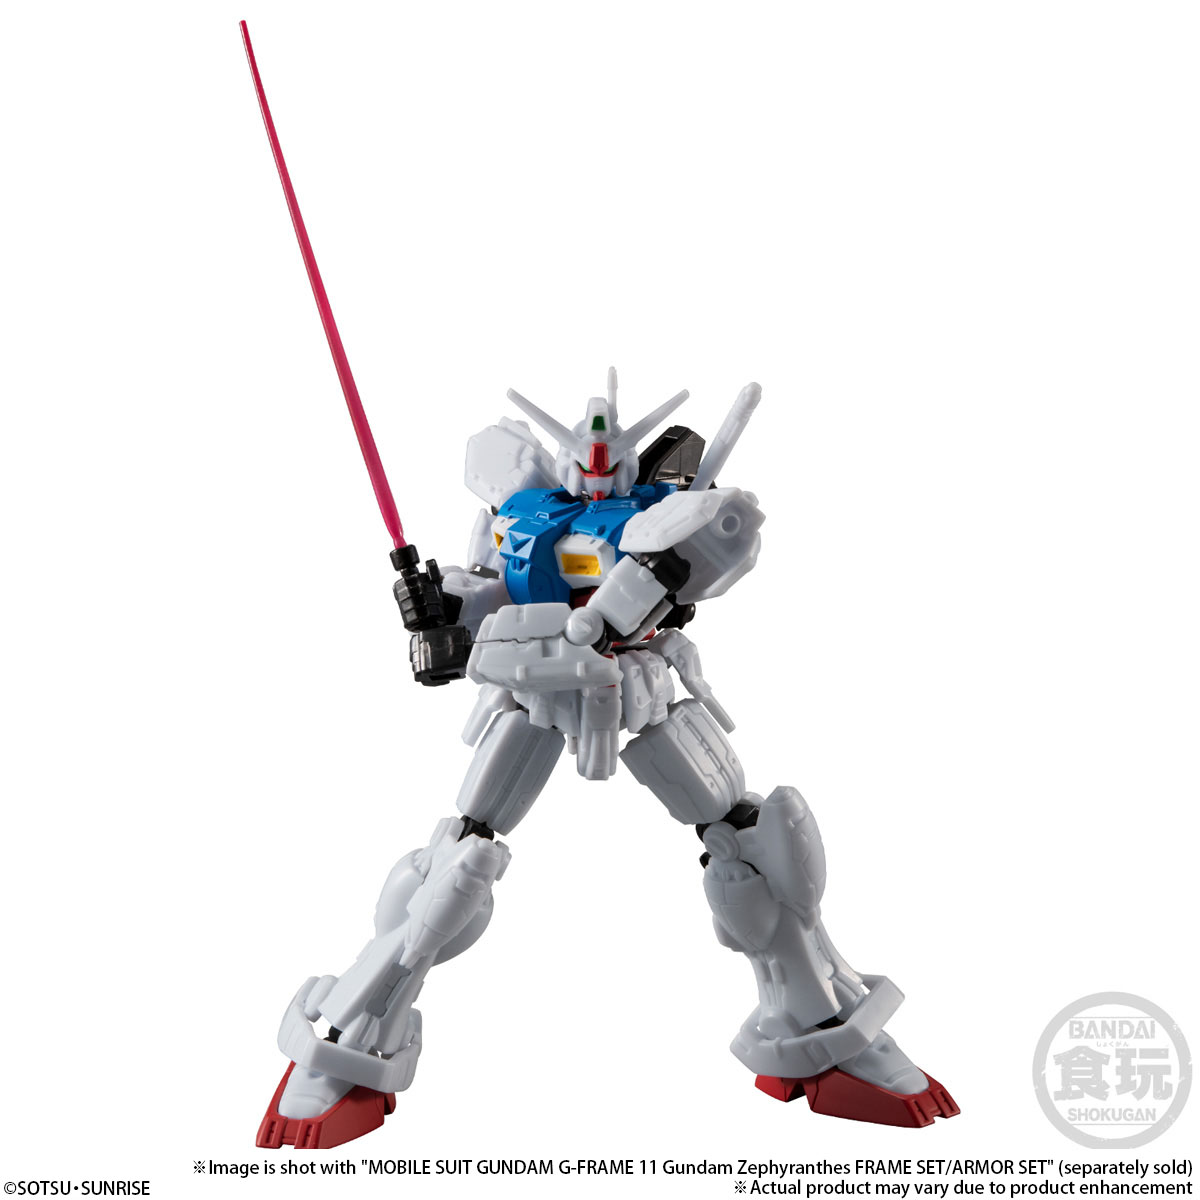 MOBILE SUIT GUNDAM G-FRAME GUNDAM GP01 & GUNDAM GP02A OPTION PARTS SET W/O GUM